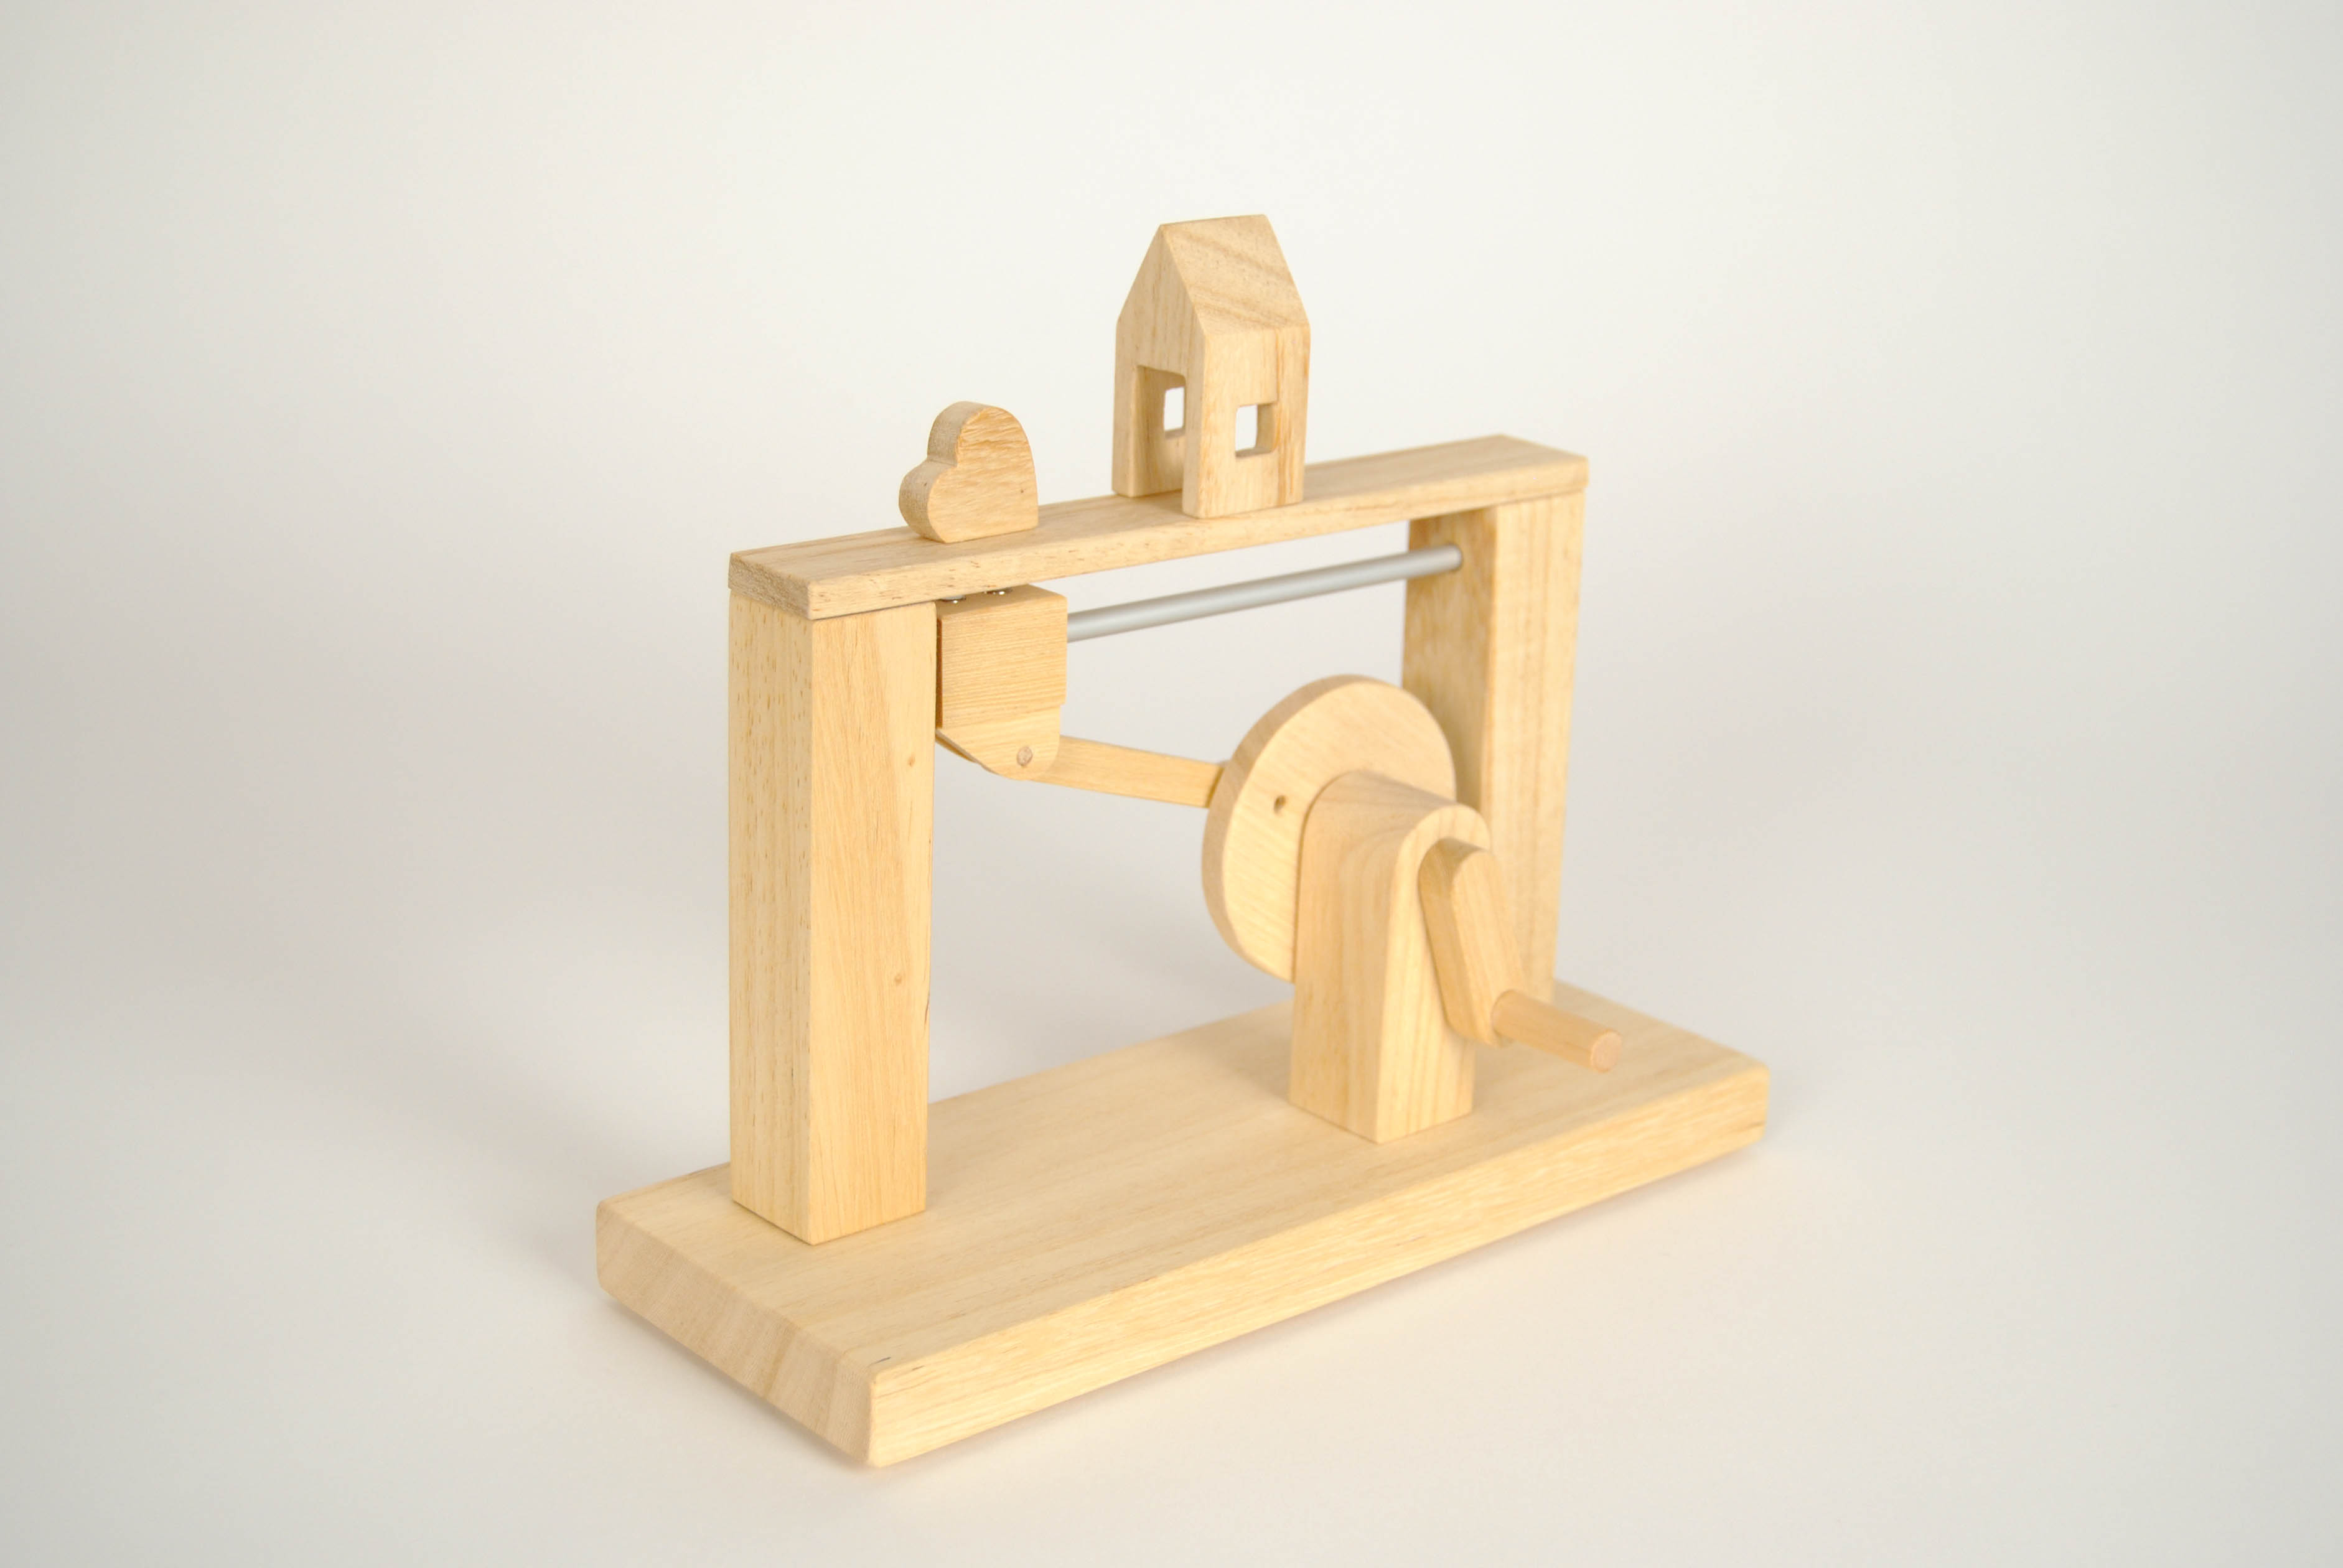 leonardo da vinci magnetic wooden toy with the heart and the house